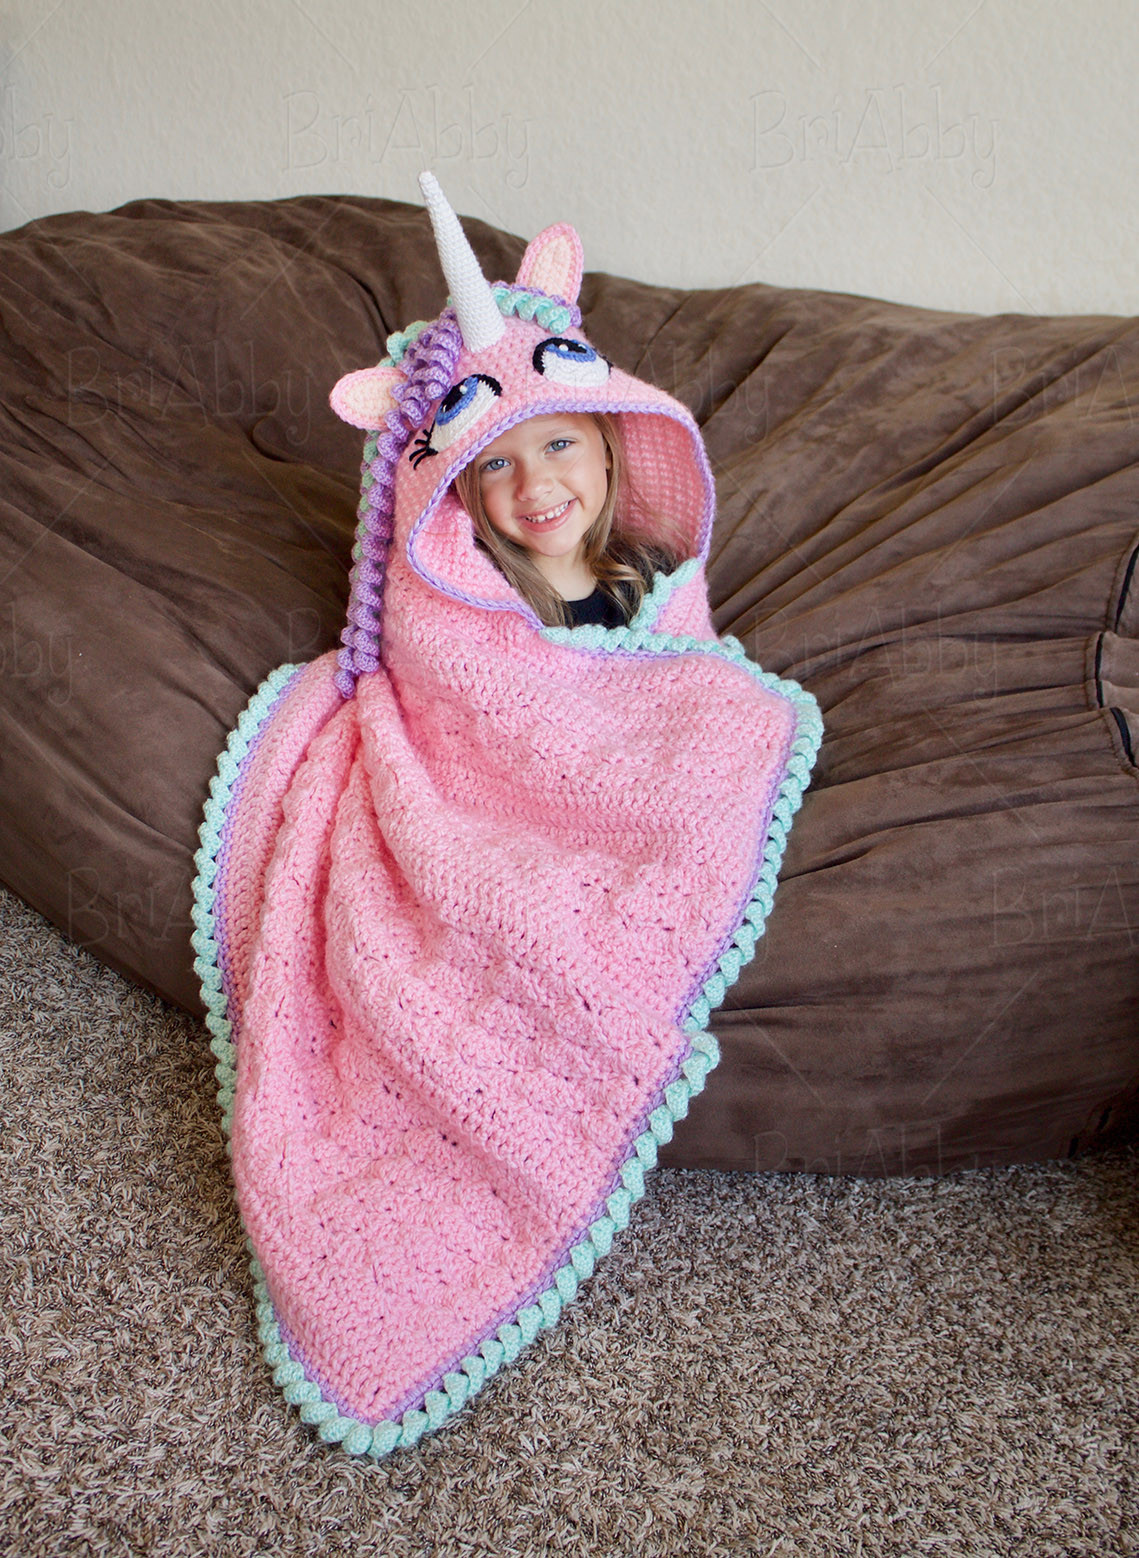 Crochet Unicorn Blanket Luxury Briabby Crochet Pattern Designs Of Charming 44 Ideas Crochet Unicorn Blanket